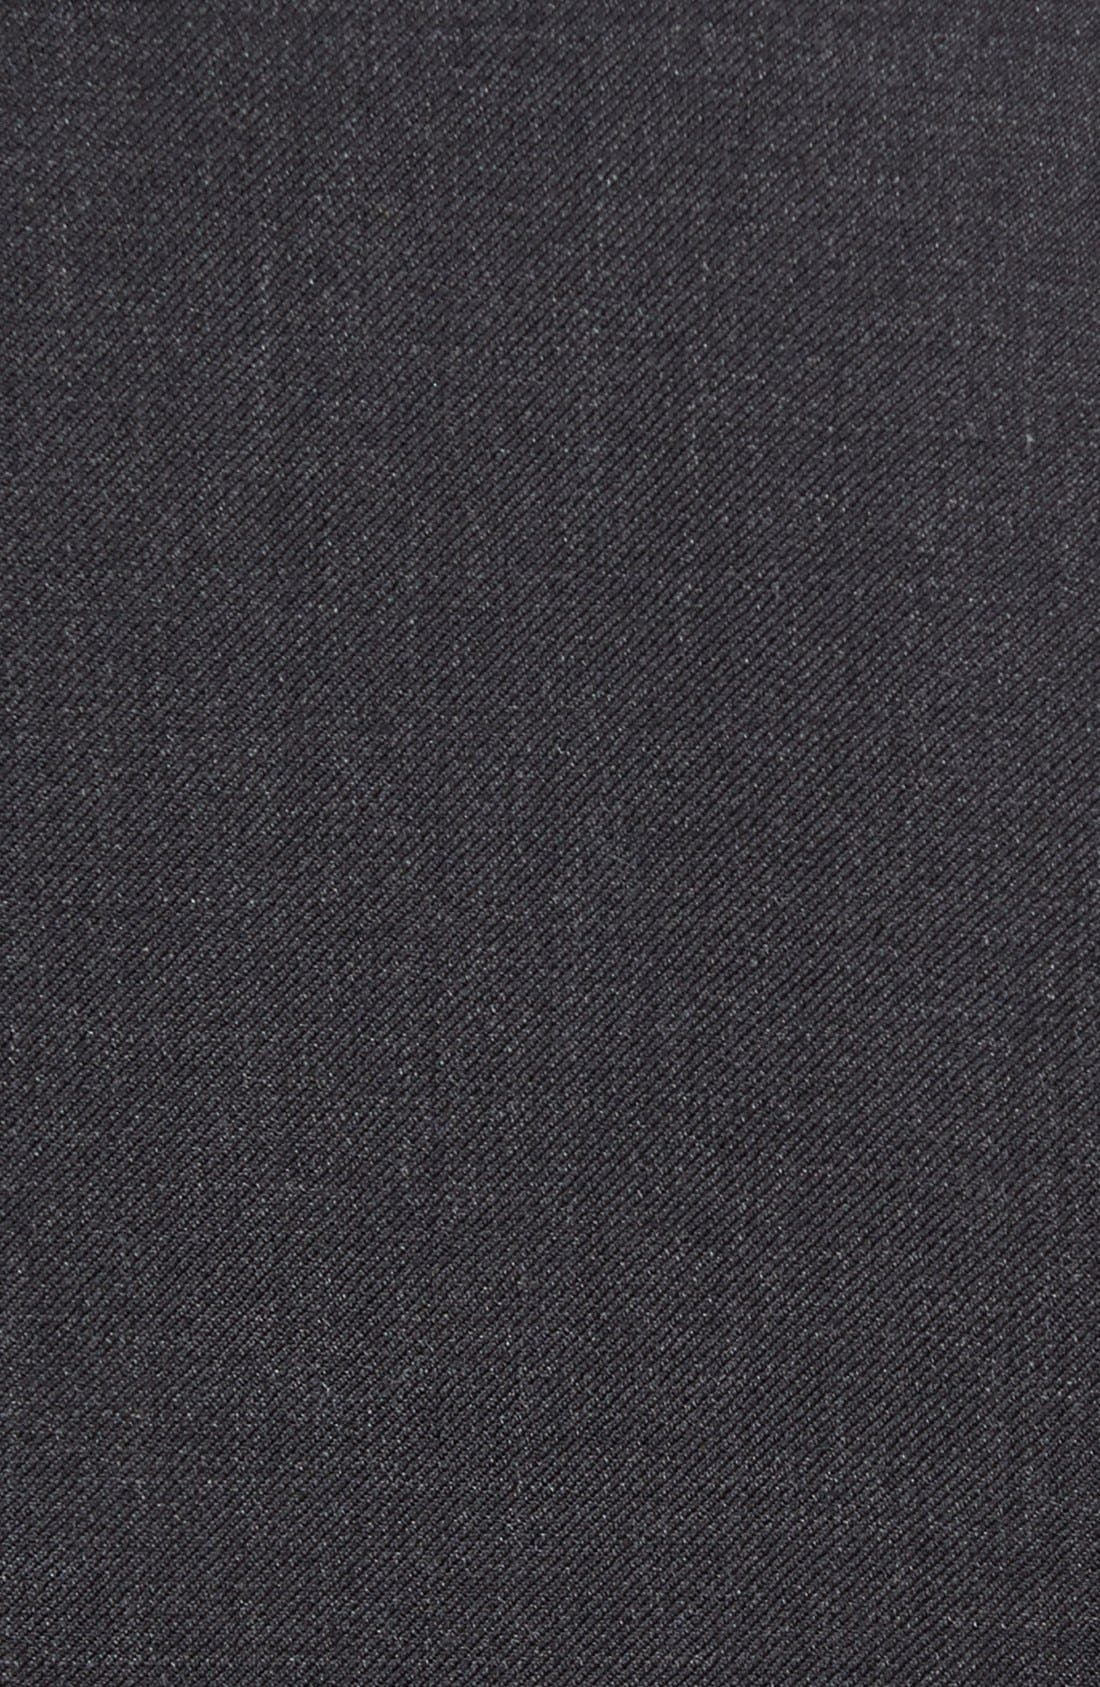 Chicago Classic Fit Solid Wool Suit,                             Alternate thumbnail 2, color,                             010